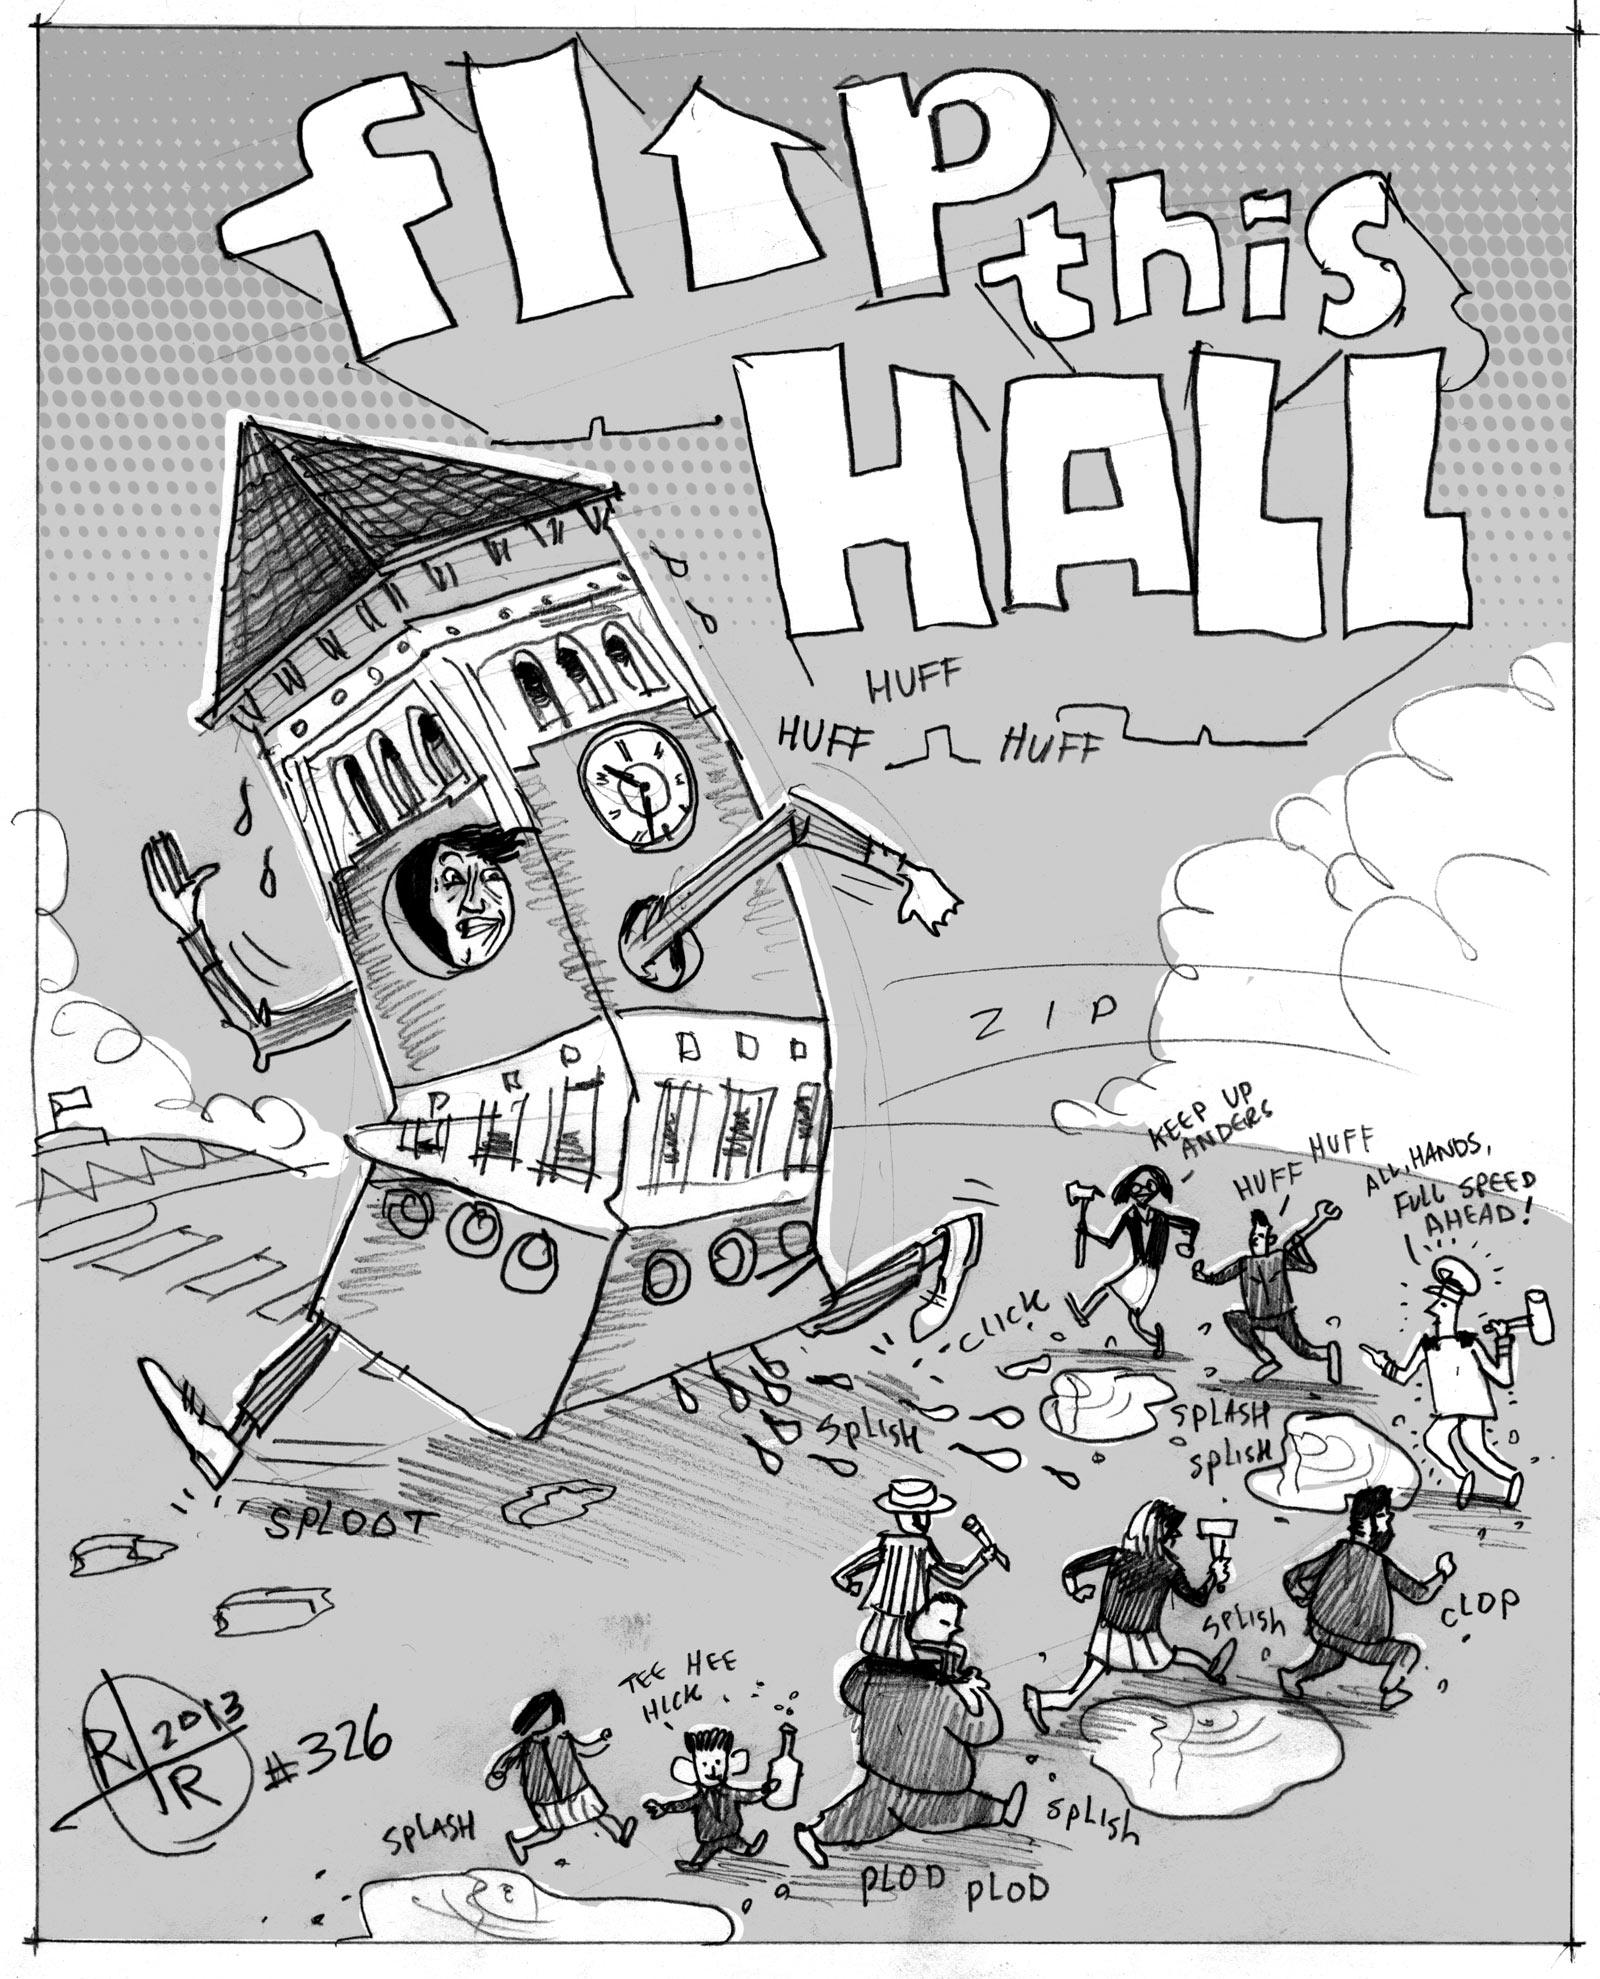 flip-this-old-city-hall.jpg